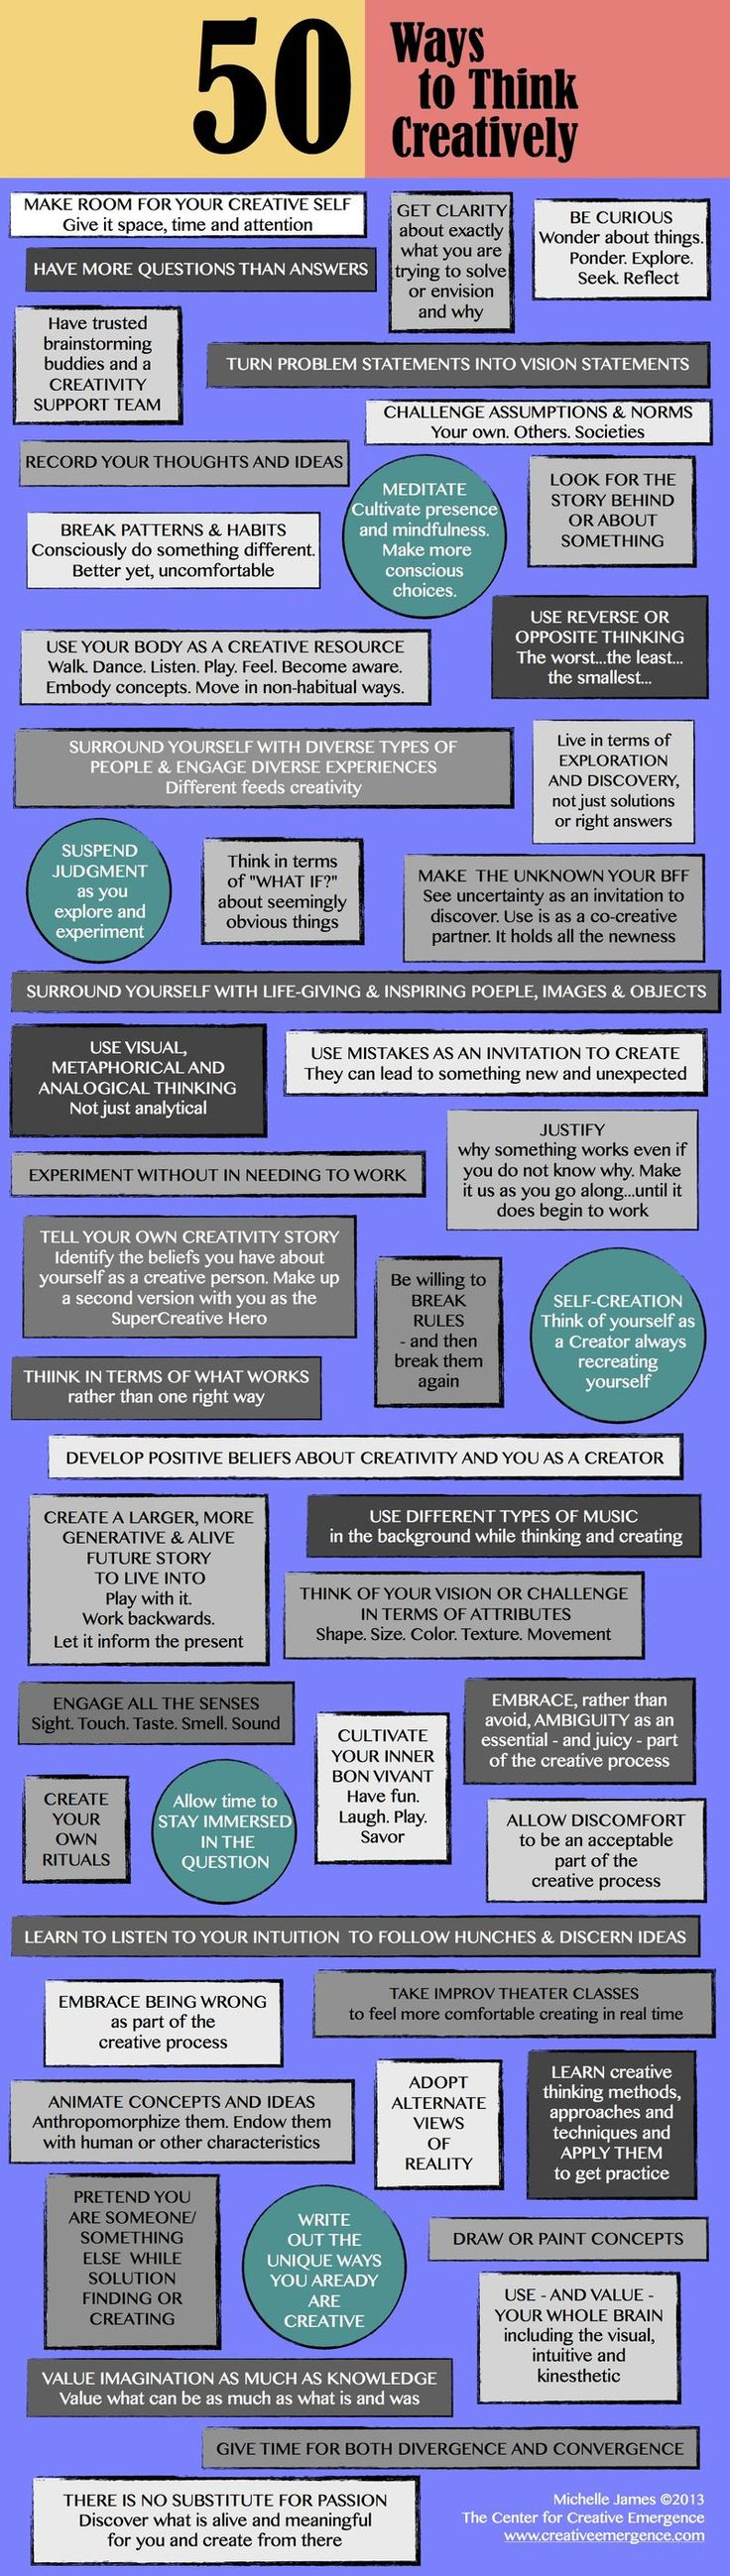 50 Ways to Think Creatively - from http://creativeemergence.typepad.com/the_fertile_unknown/2013/11/50-ways-to-think-creatively-poster.html